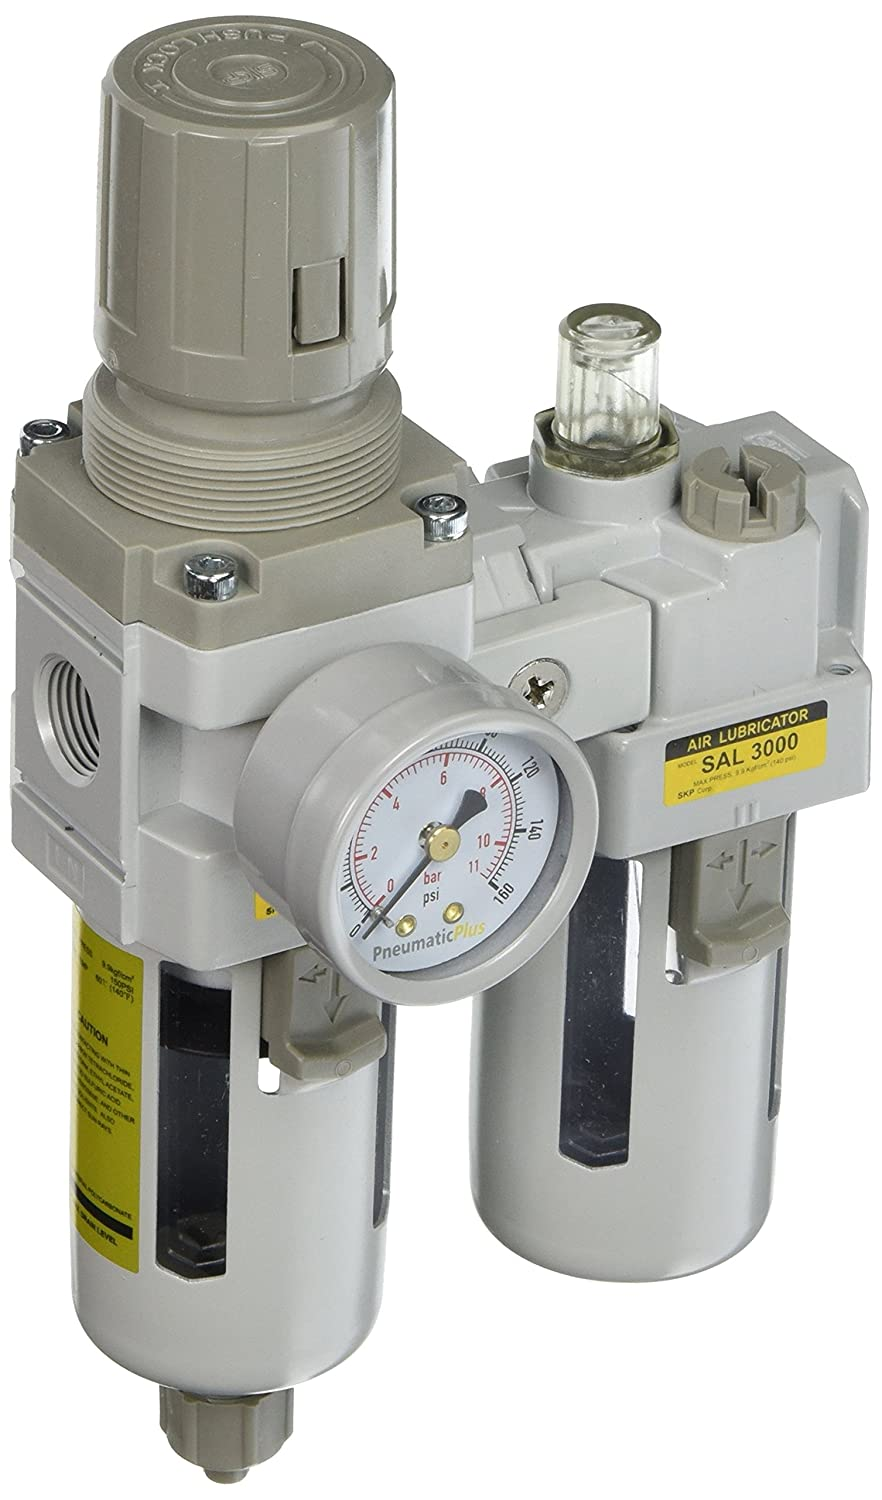 PneumaticPlus SAU3010M-N03G 2 Piece Compressed Air Filter Regulator Lubricator Combination, 3/8' Pipe Size, NPT-Manual Drain, Poly Bowl, 10 m with Gauge 3/8 Pipe Size